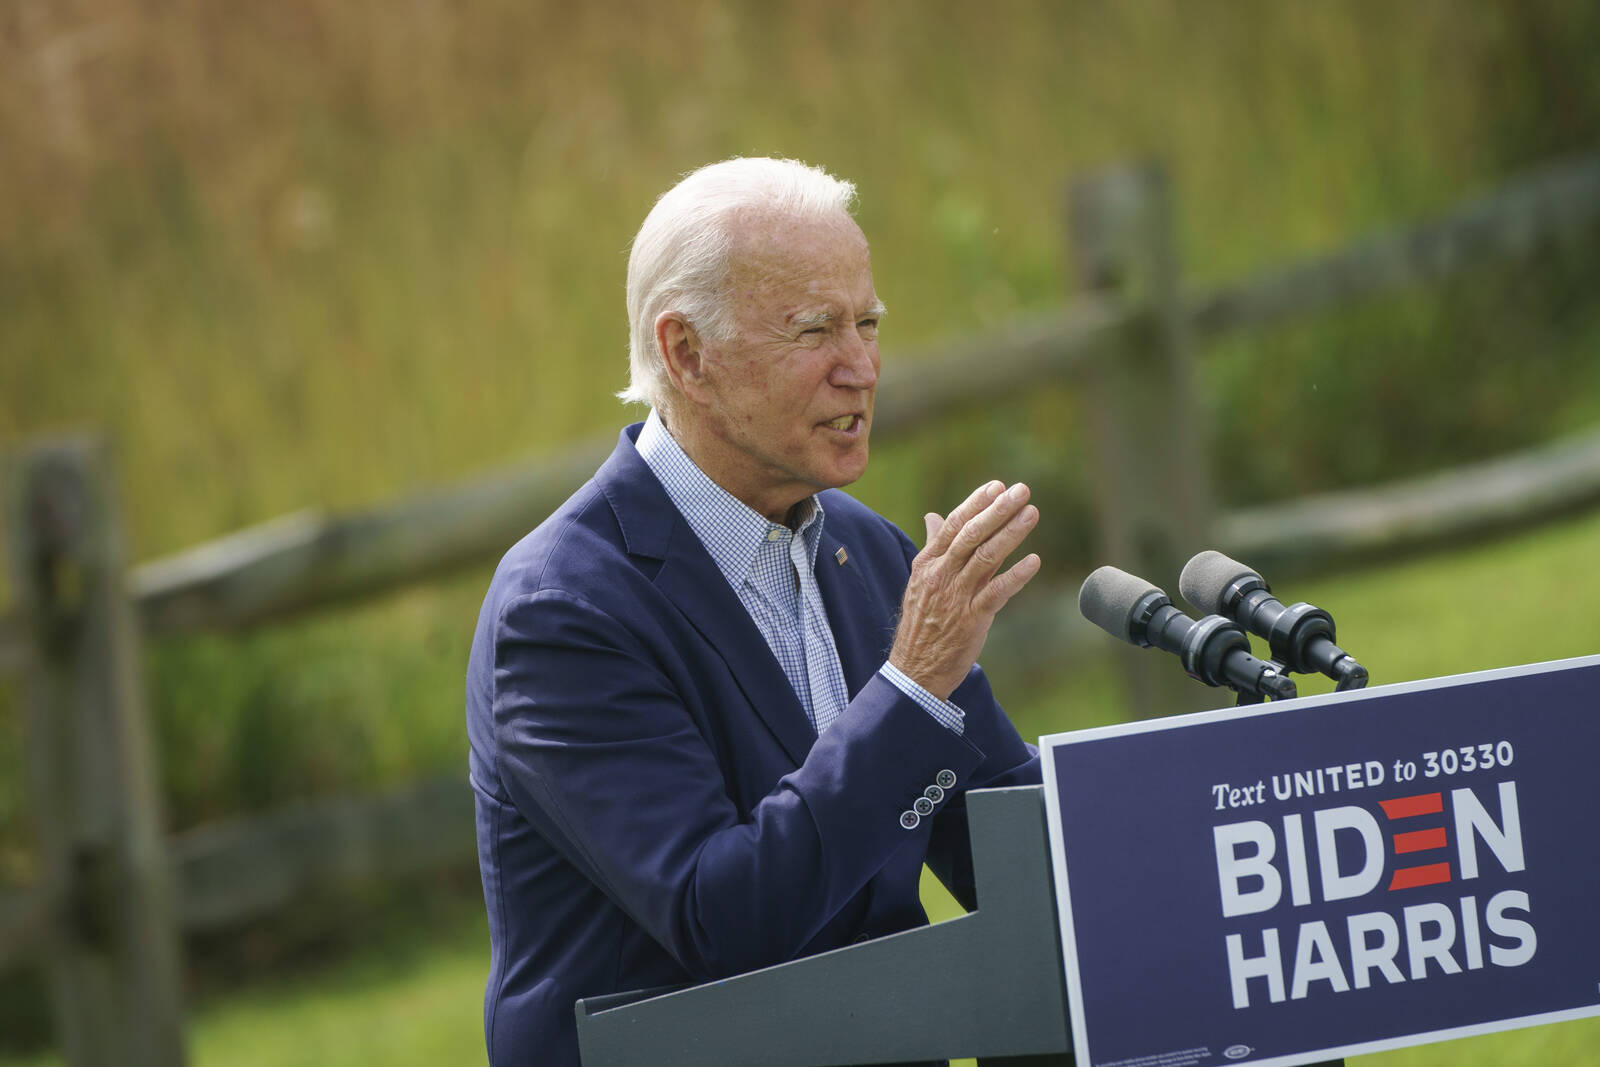 Democratic presidential nominee Joe Biden speaks about climate change and the wildfires on the West Coast at the Delaware Museum of Natural History on Sept. 14, 2020 in Wilmington, Delaware. Credit: Drew Angerer/Getty Images